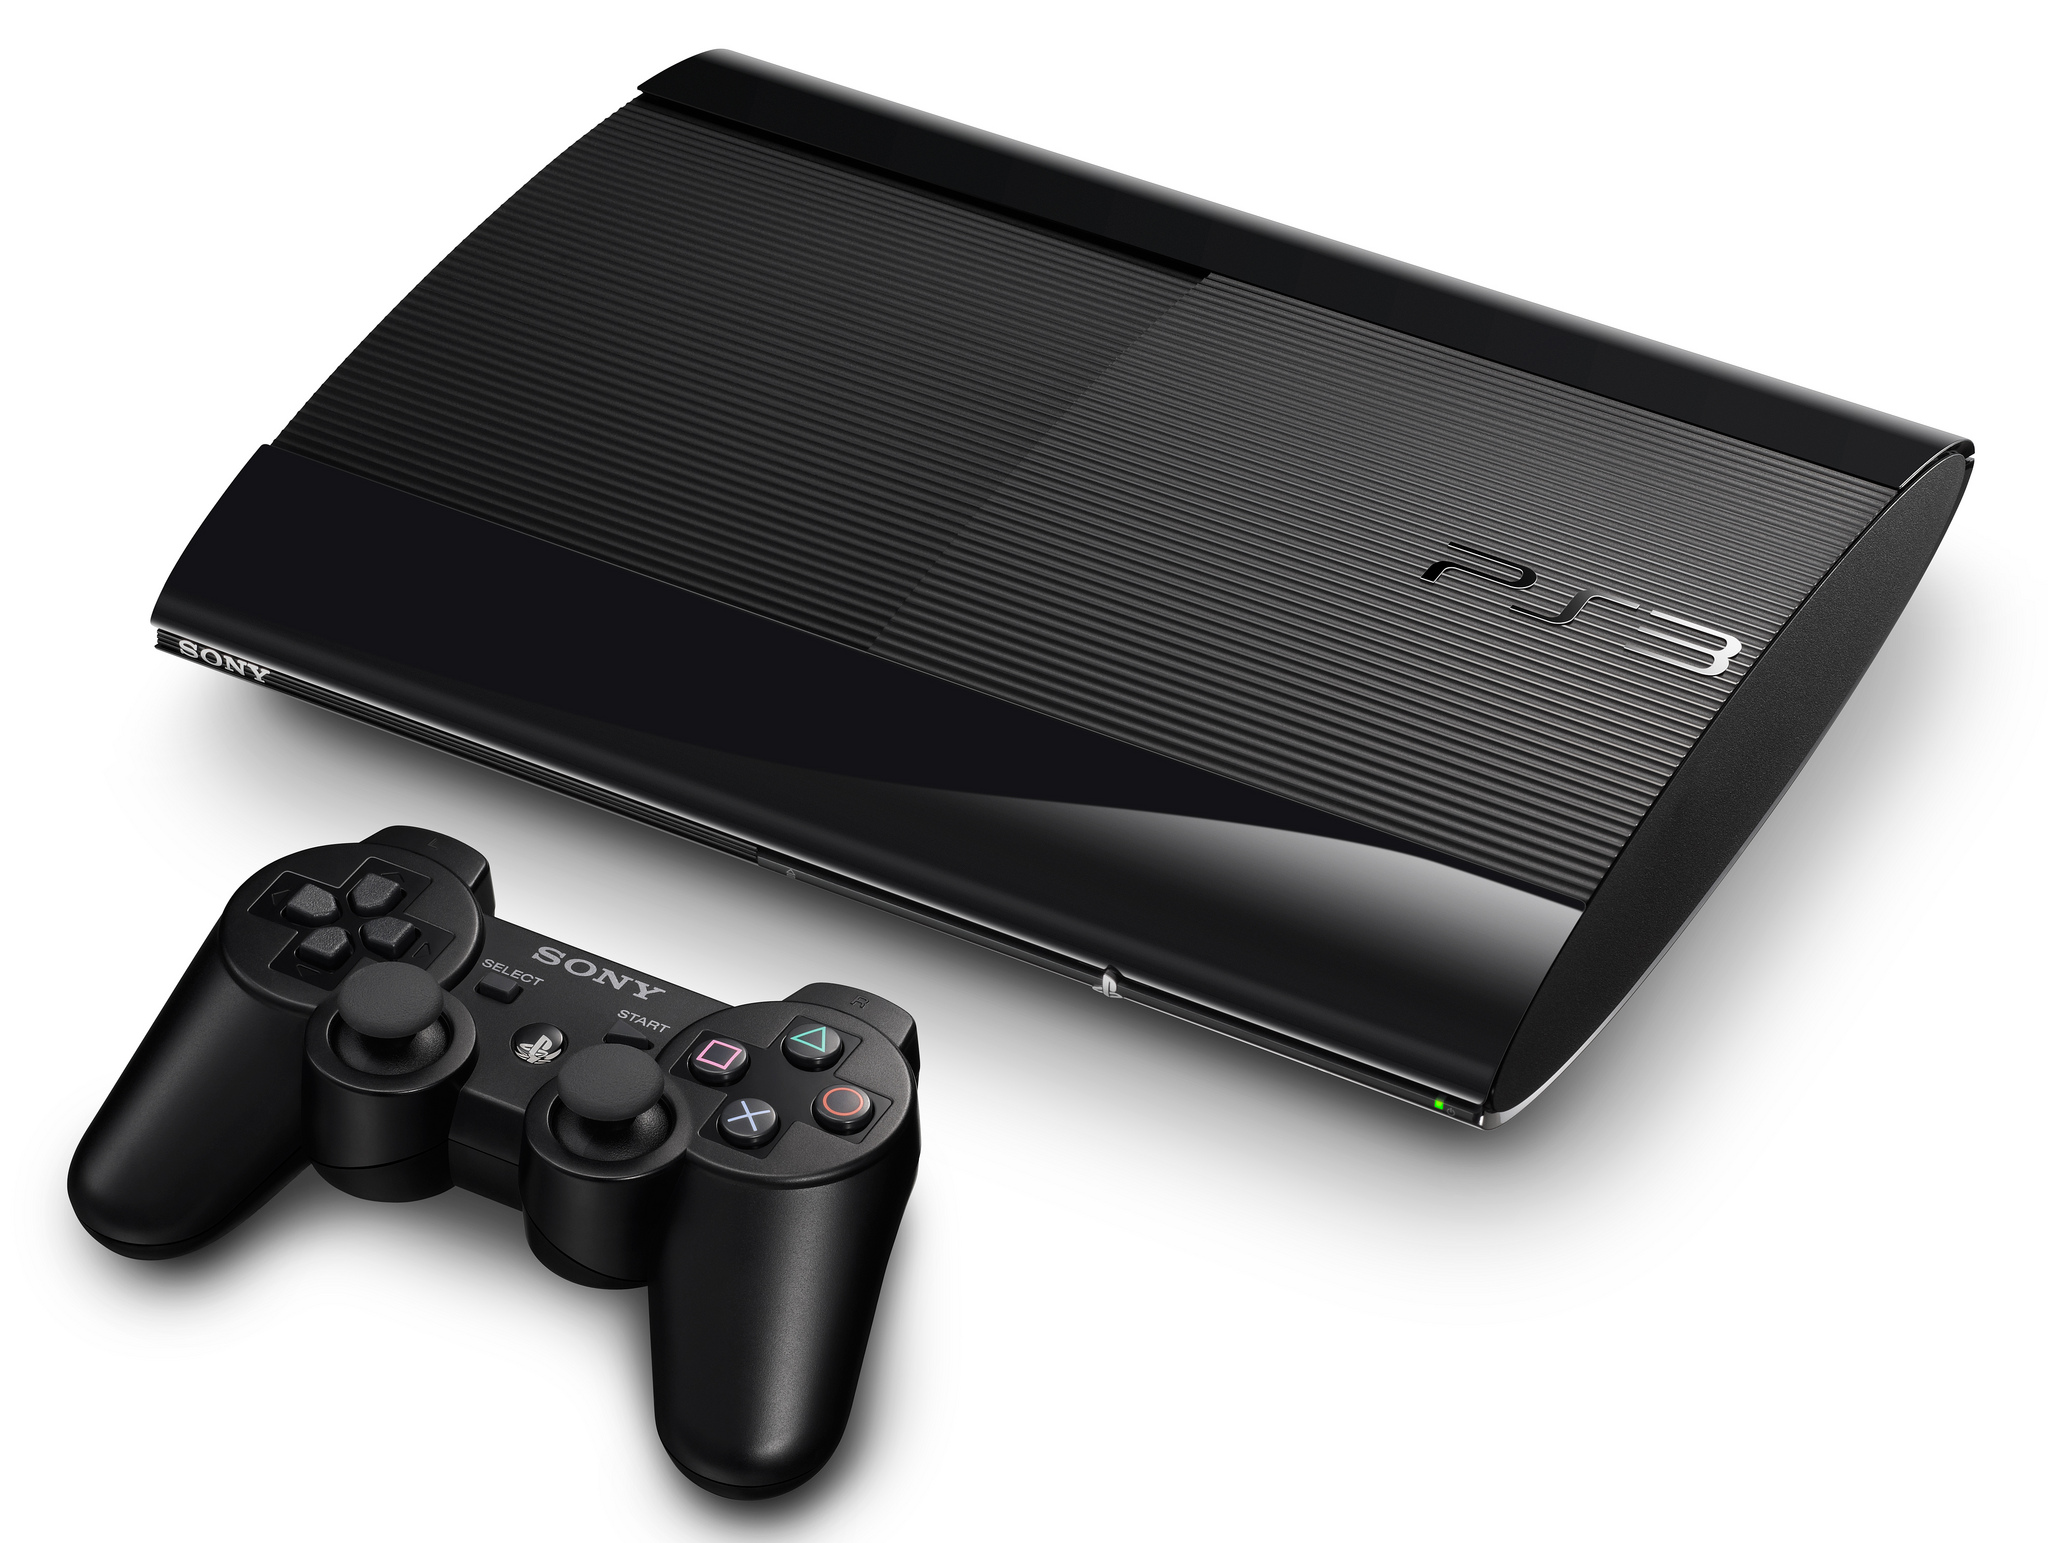 What's next for the PlayStation?